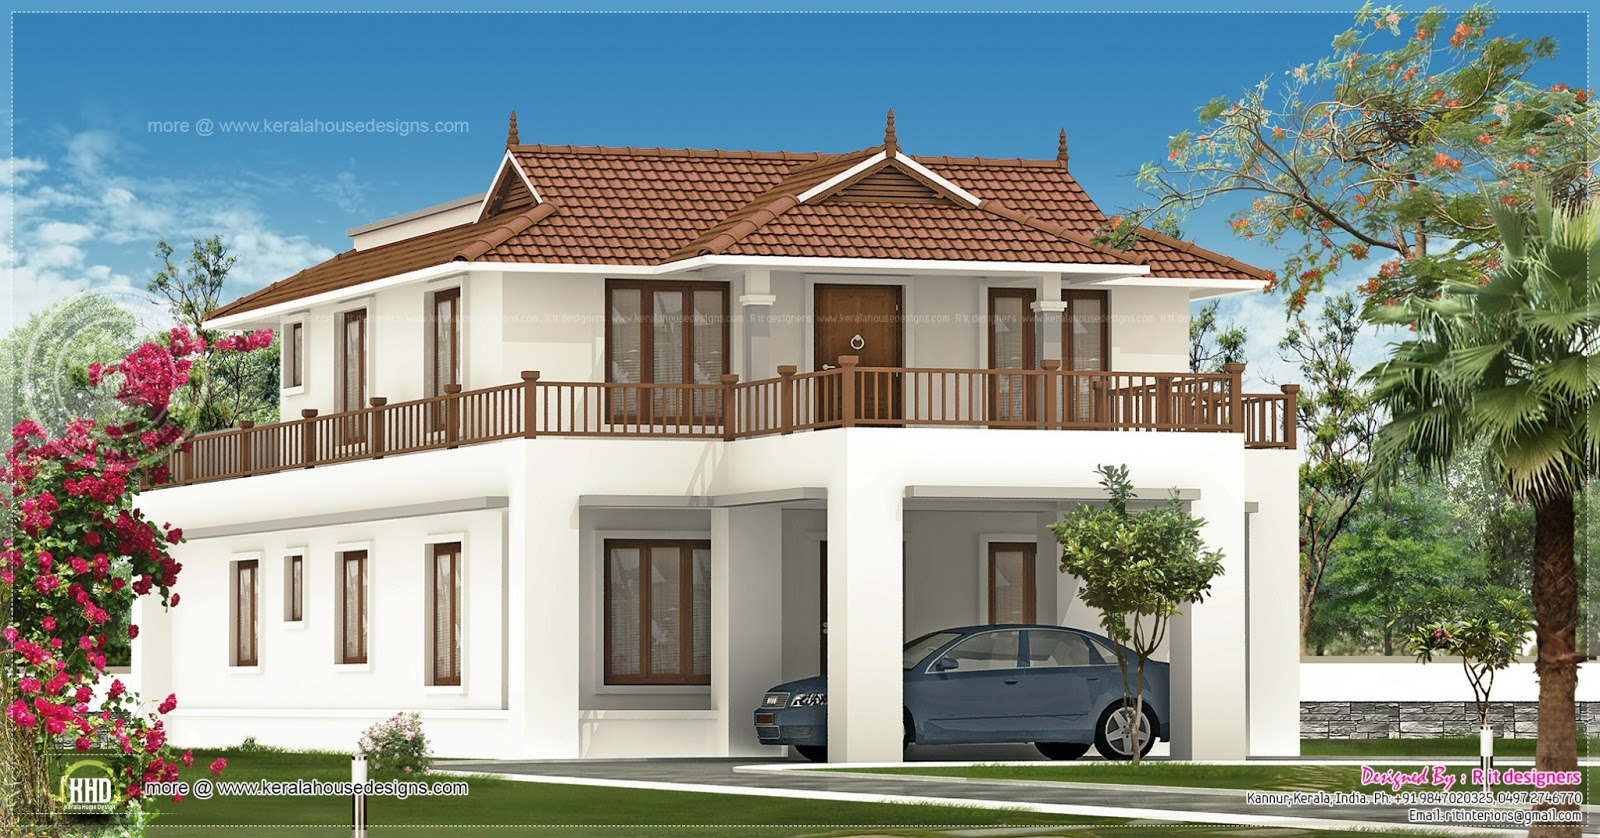 2820 square feet house exterior design home kerala plans for Exterior design photos